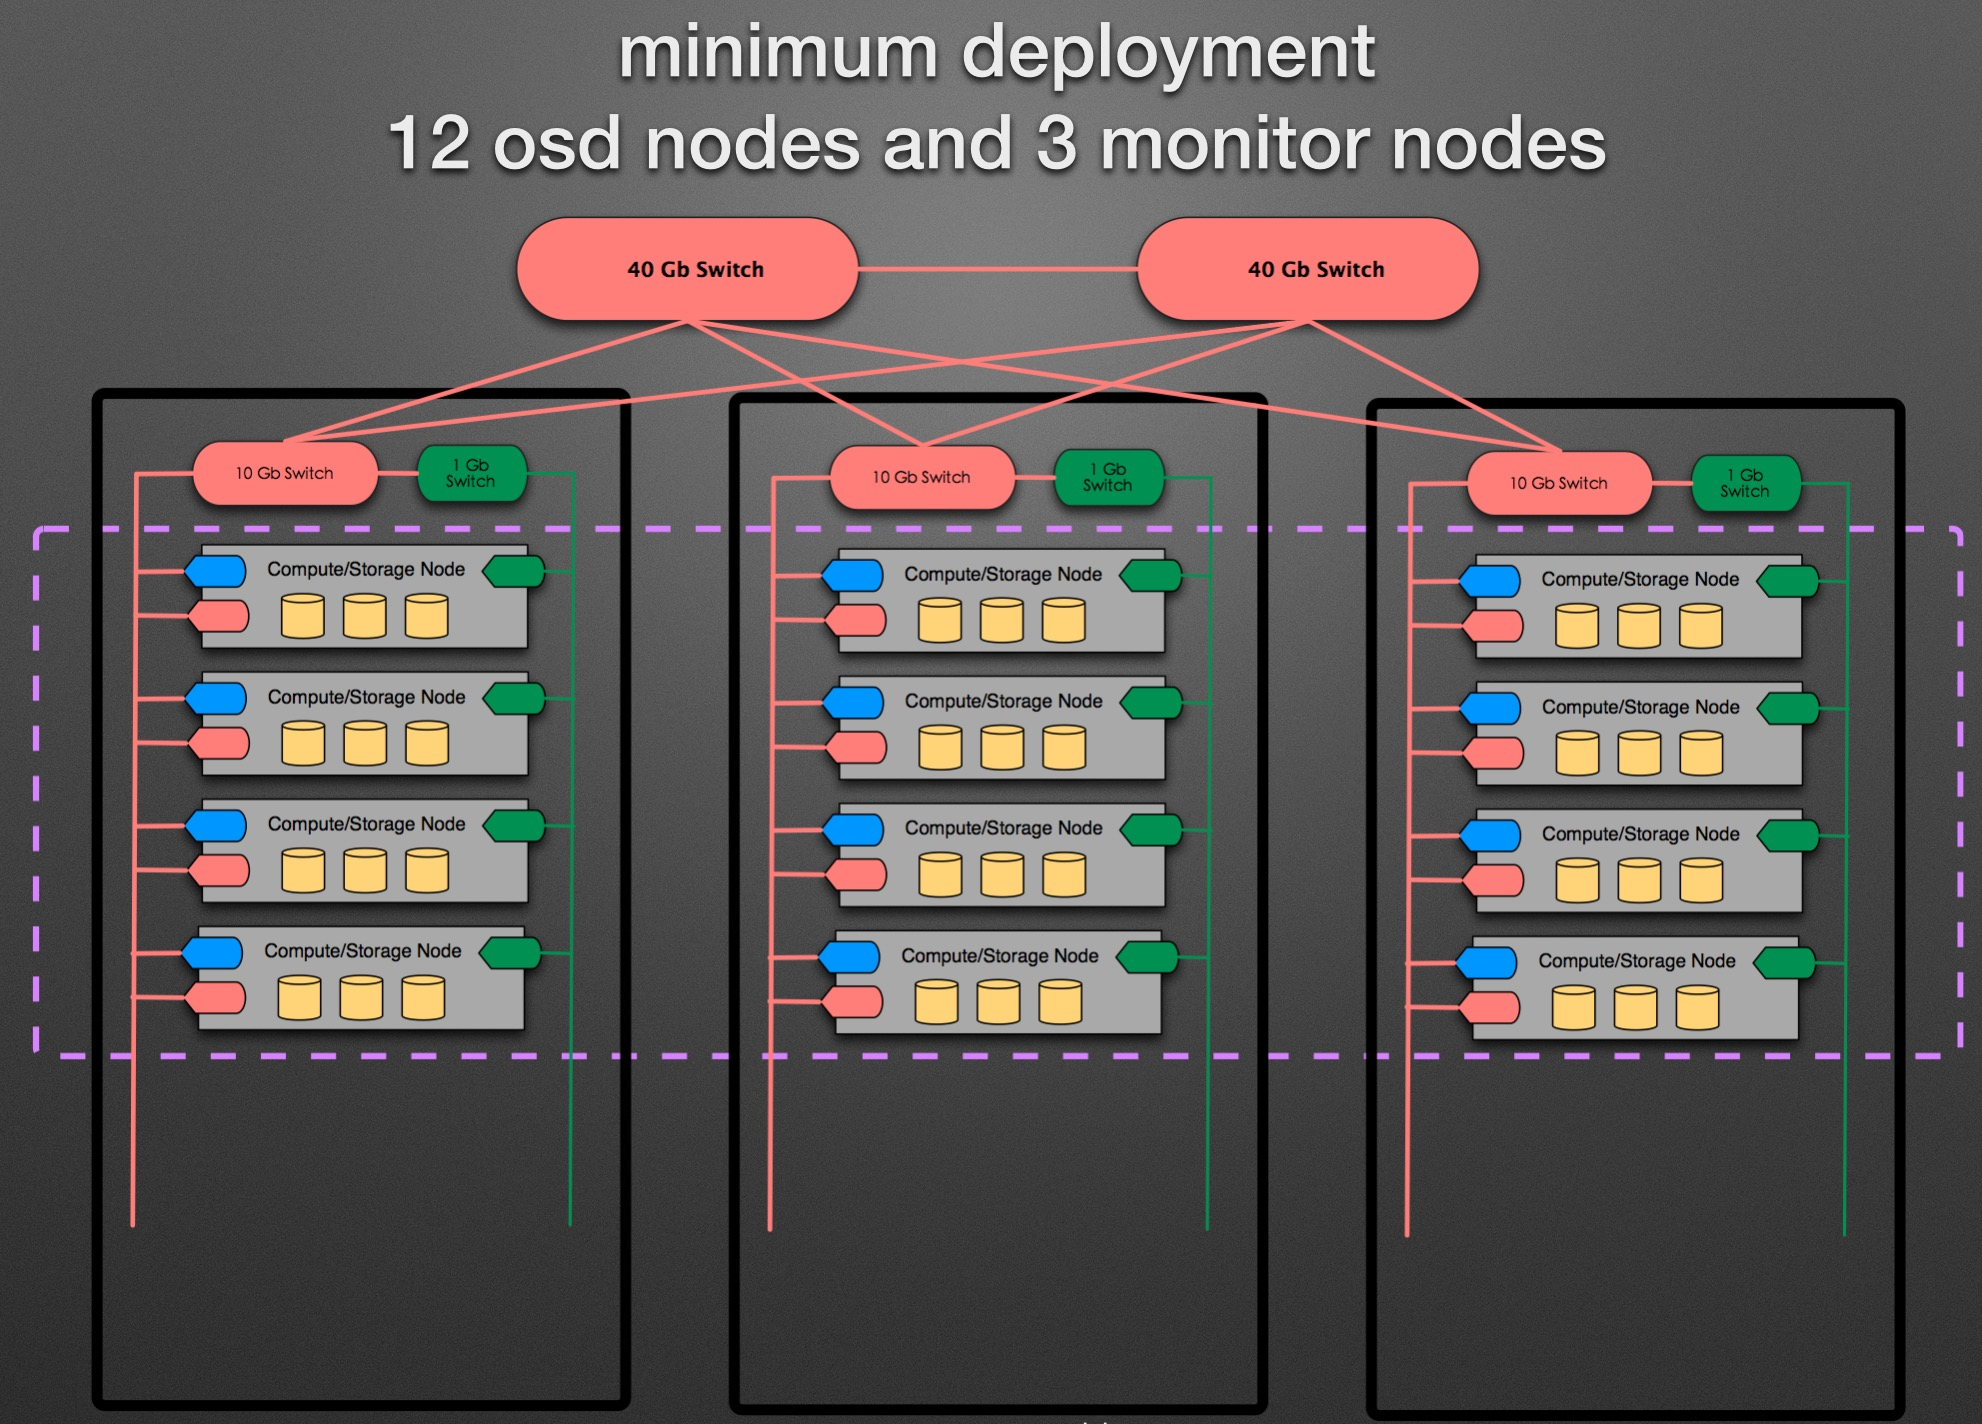 ss-minimum-deployment